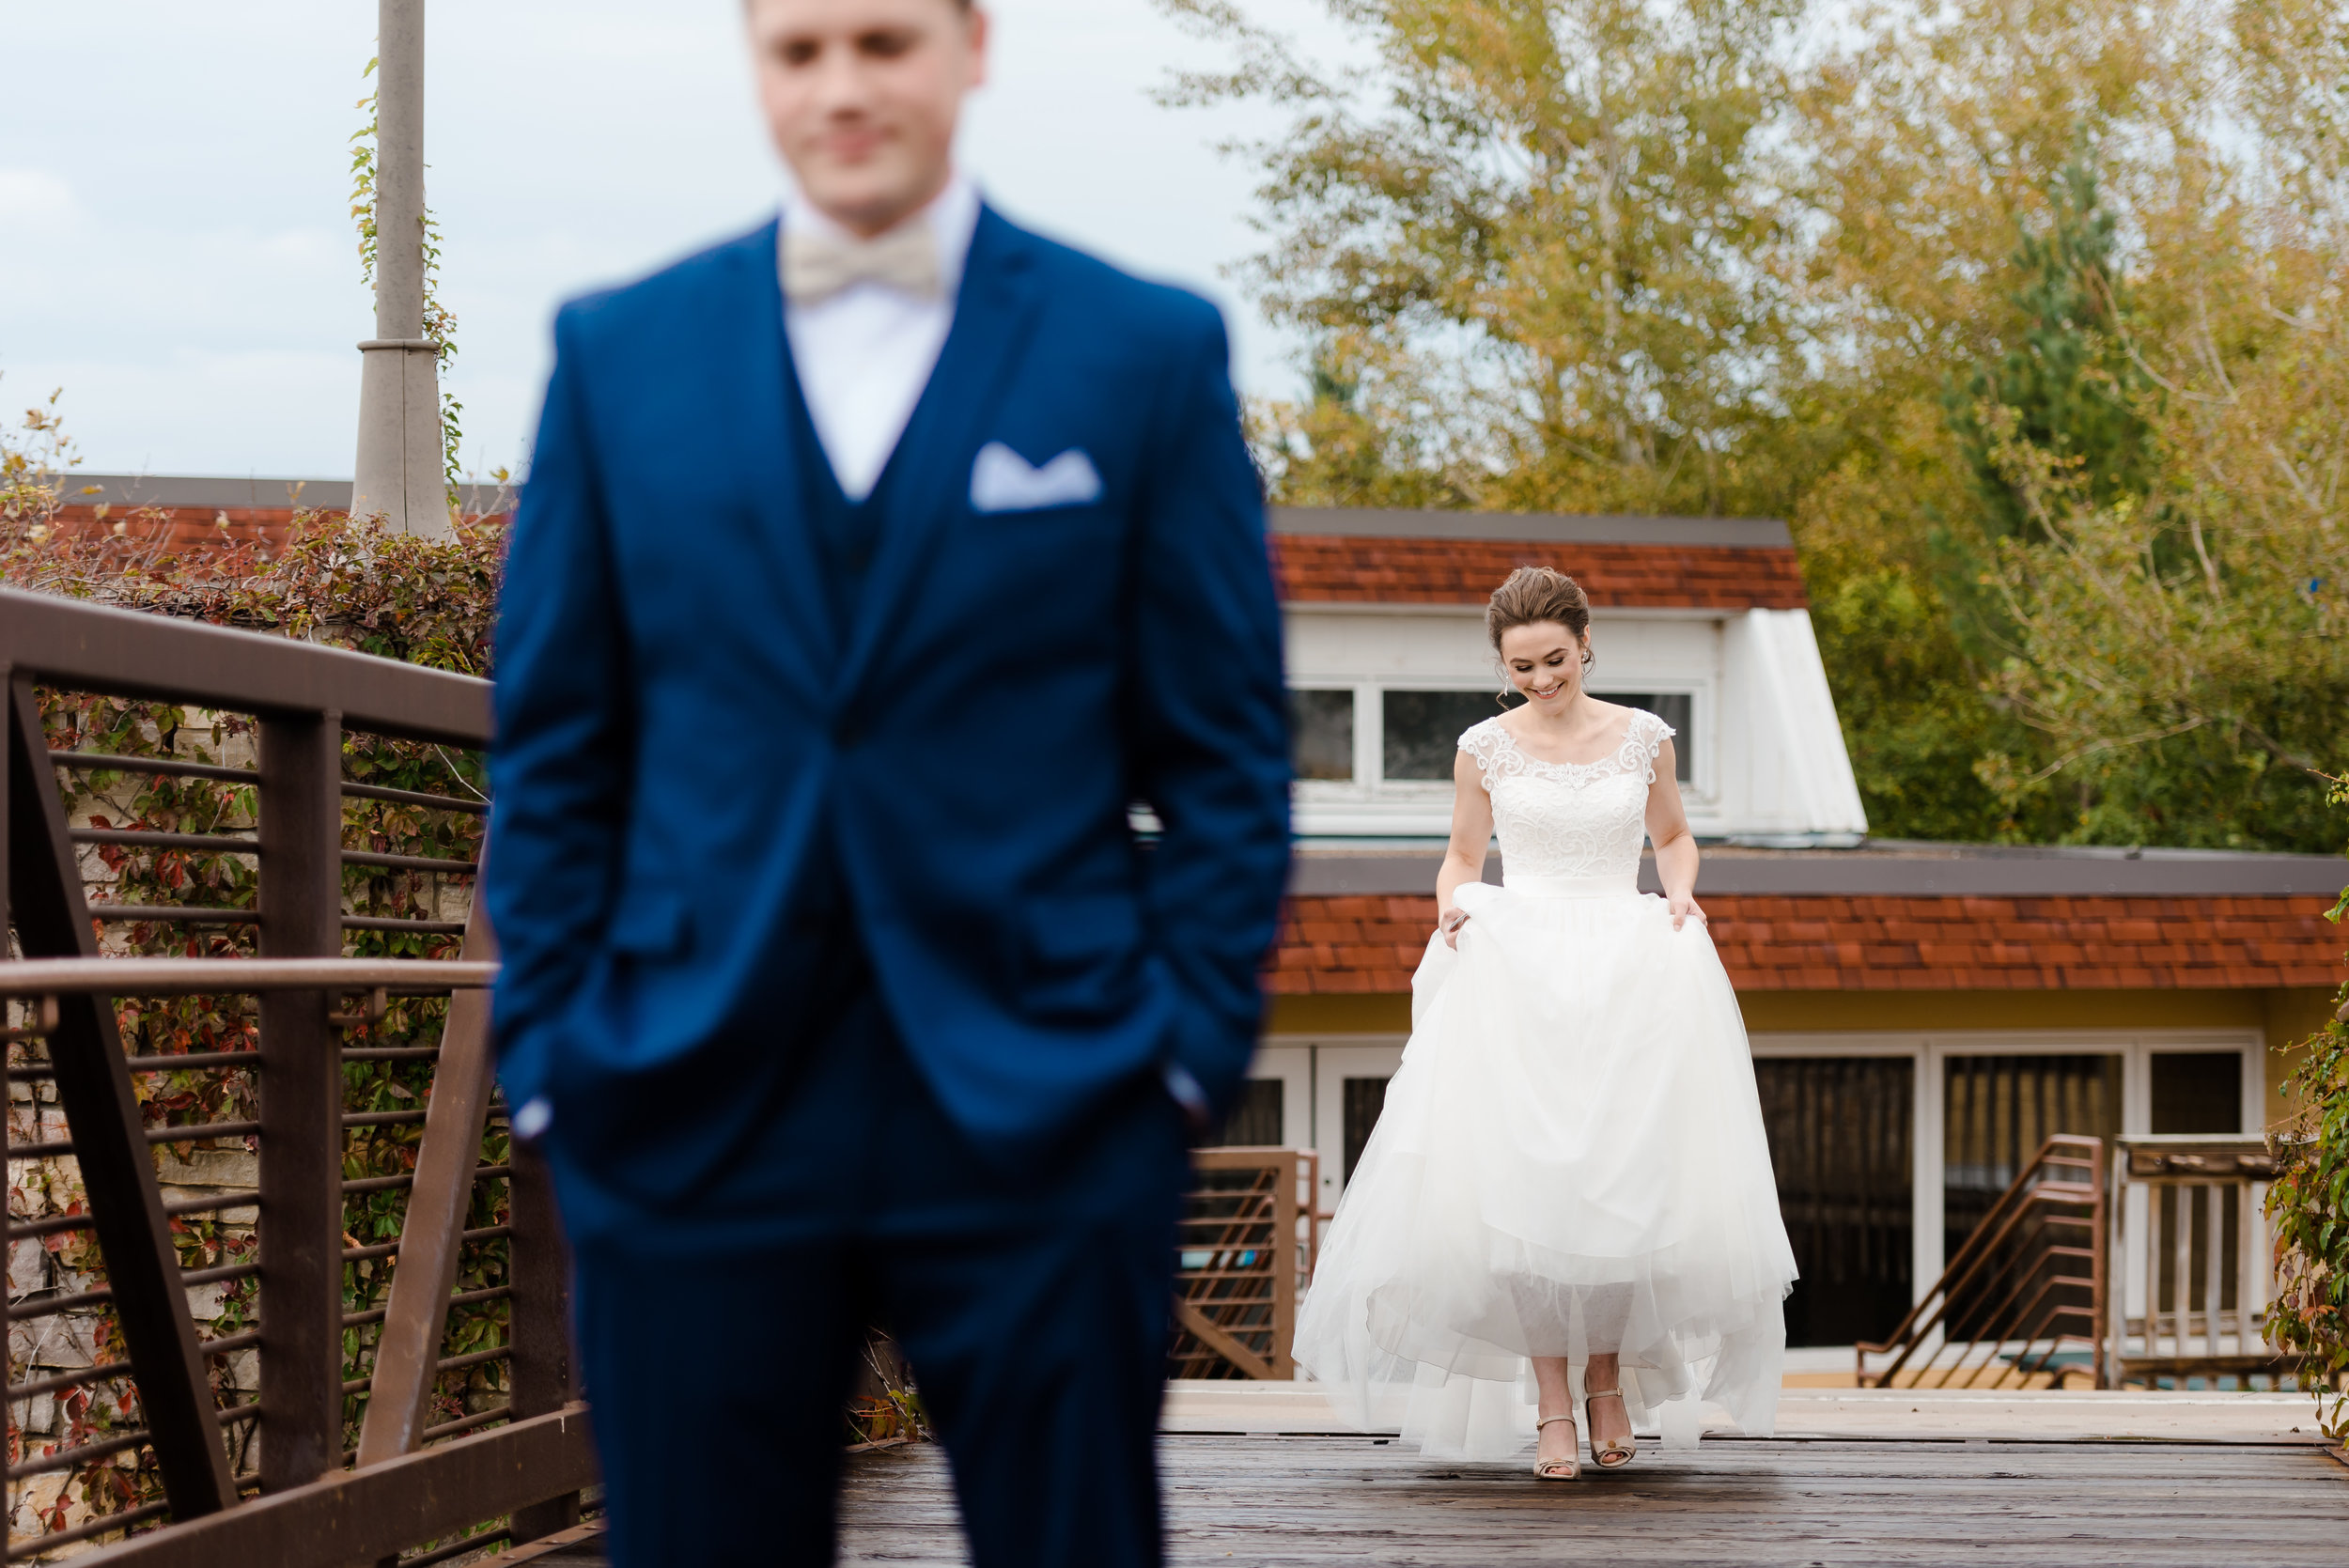 Elm Creek Chalet Wedding - Bride and Groom First Look on Bridge - Romantic Wedding Photos in MN